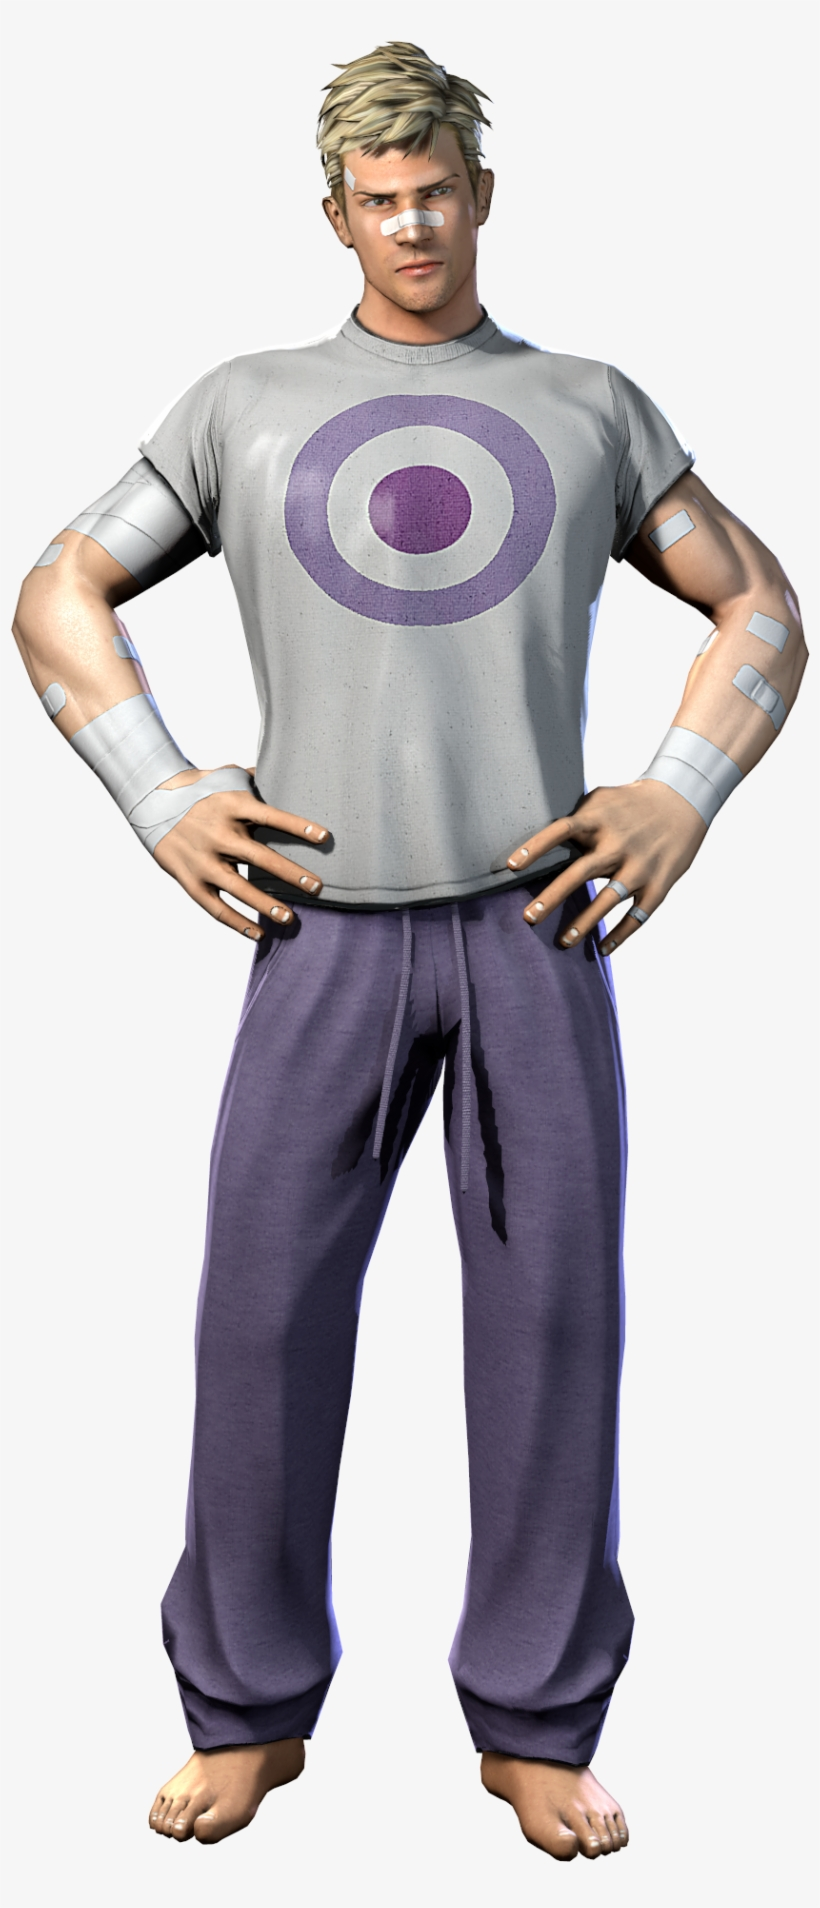 Mvc Infinite Just Reminds Me How Stupid Hawkeye's Modern - Marvel Heroes Hawkeye Costumes, transparent png #646211